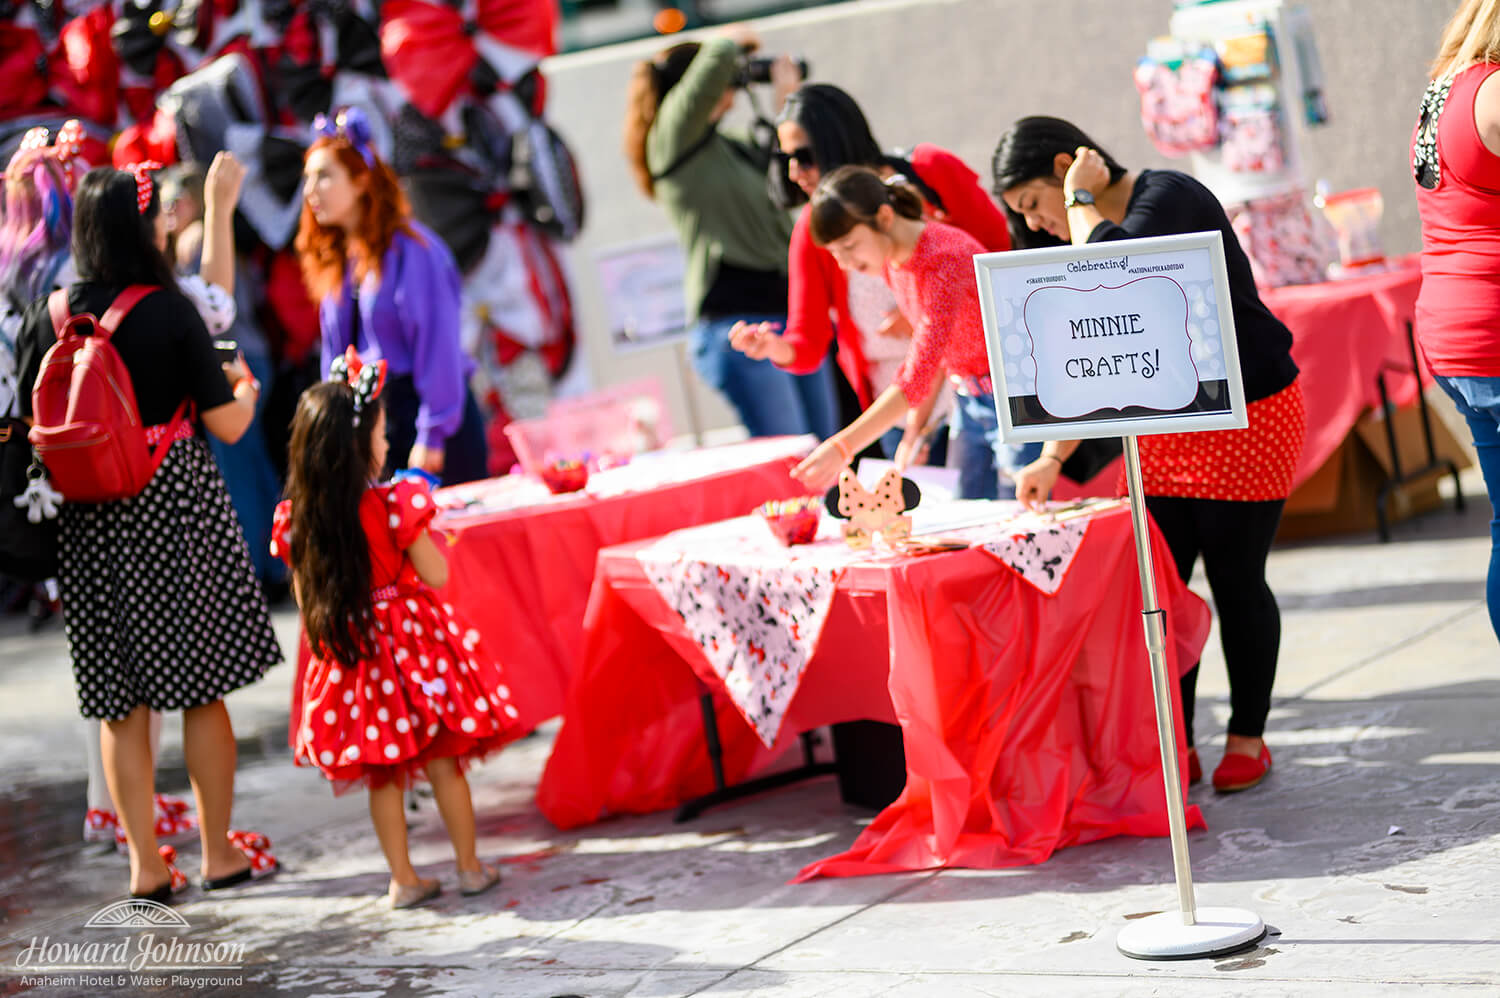 """women set up tables labeled from a sign, """"Minnie crafts!"""" as a young girl in a Minnie Mouse polka dot dress watches"""